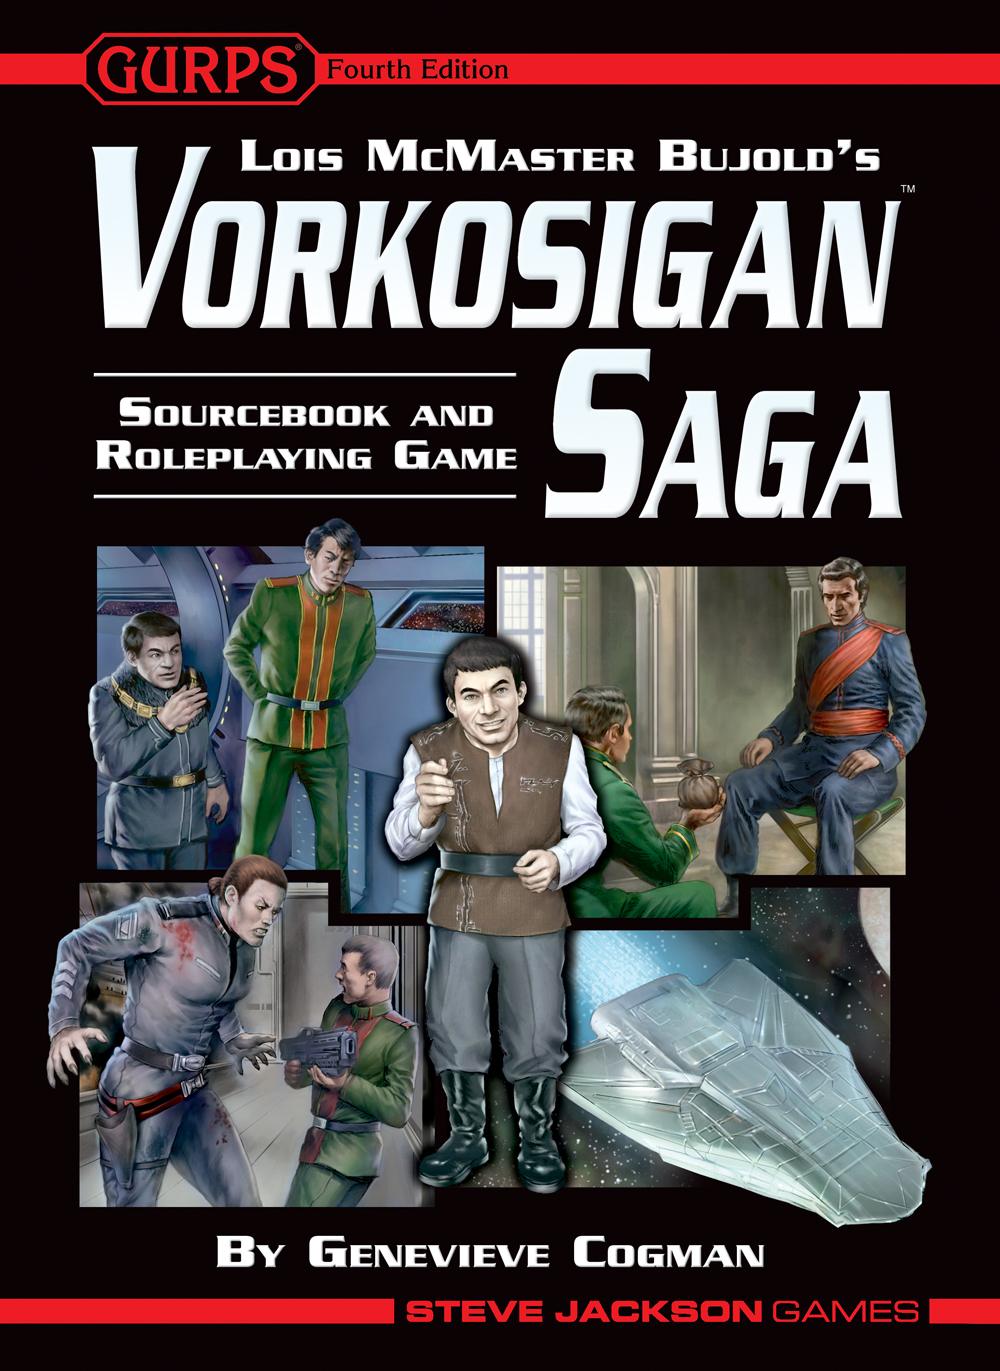 Lois McMaster Bujold's Vorkosigan Saga Sourcebook and Roleplaying Game